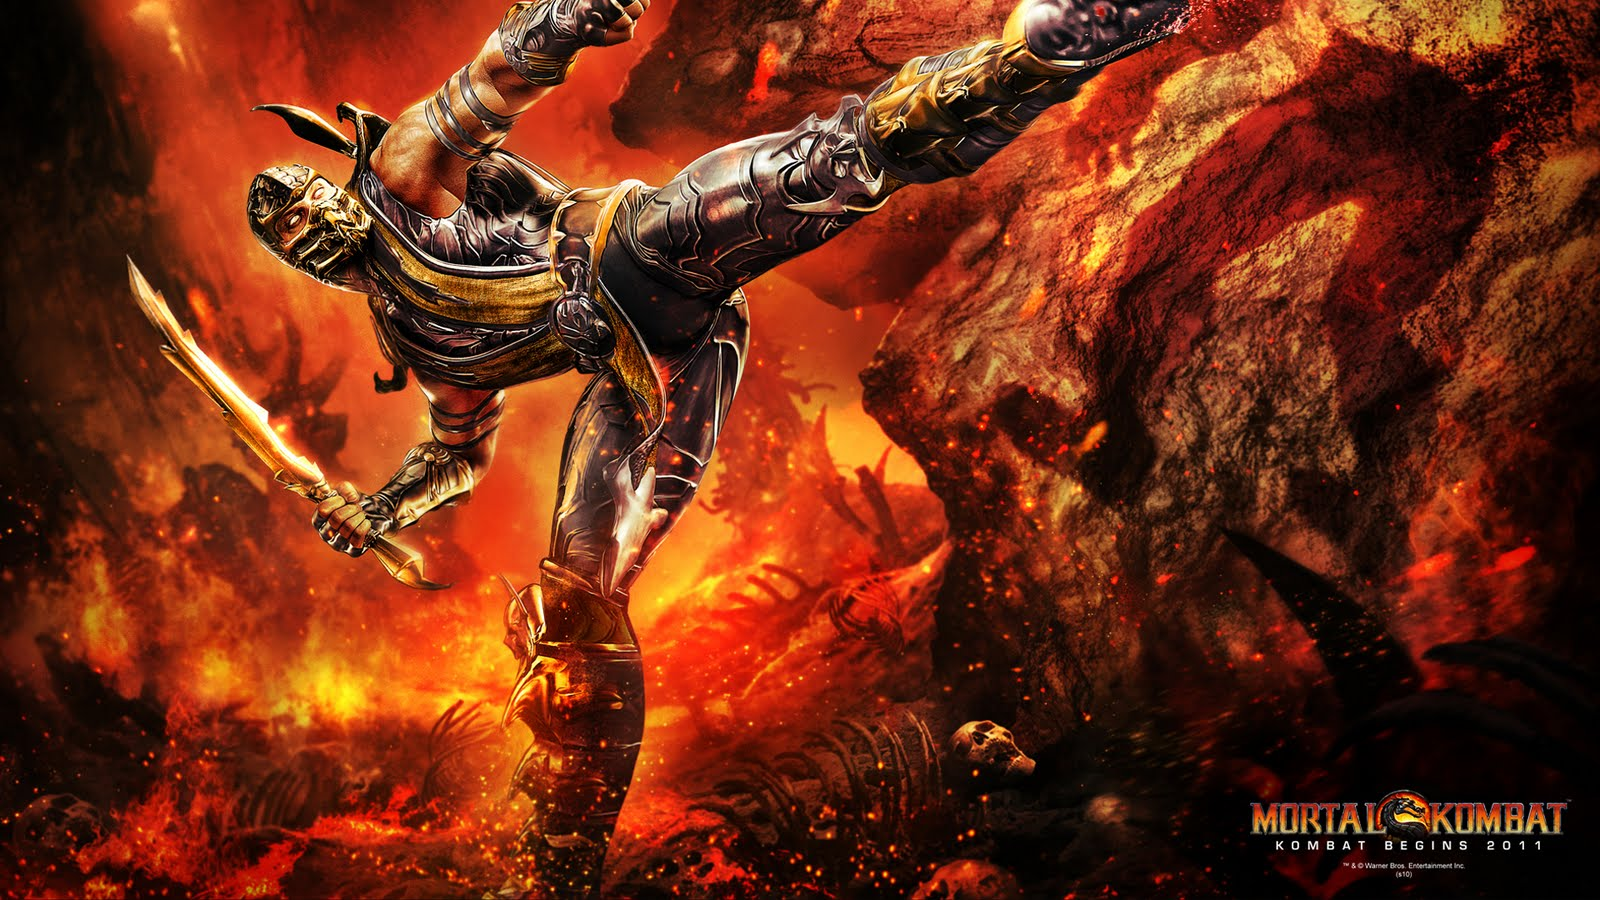 Mortal kombat HD & Widescreen Wallpaper 0.303296246851947